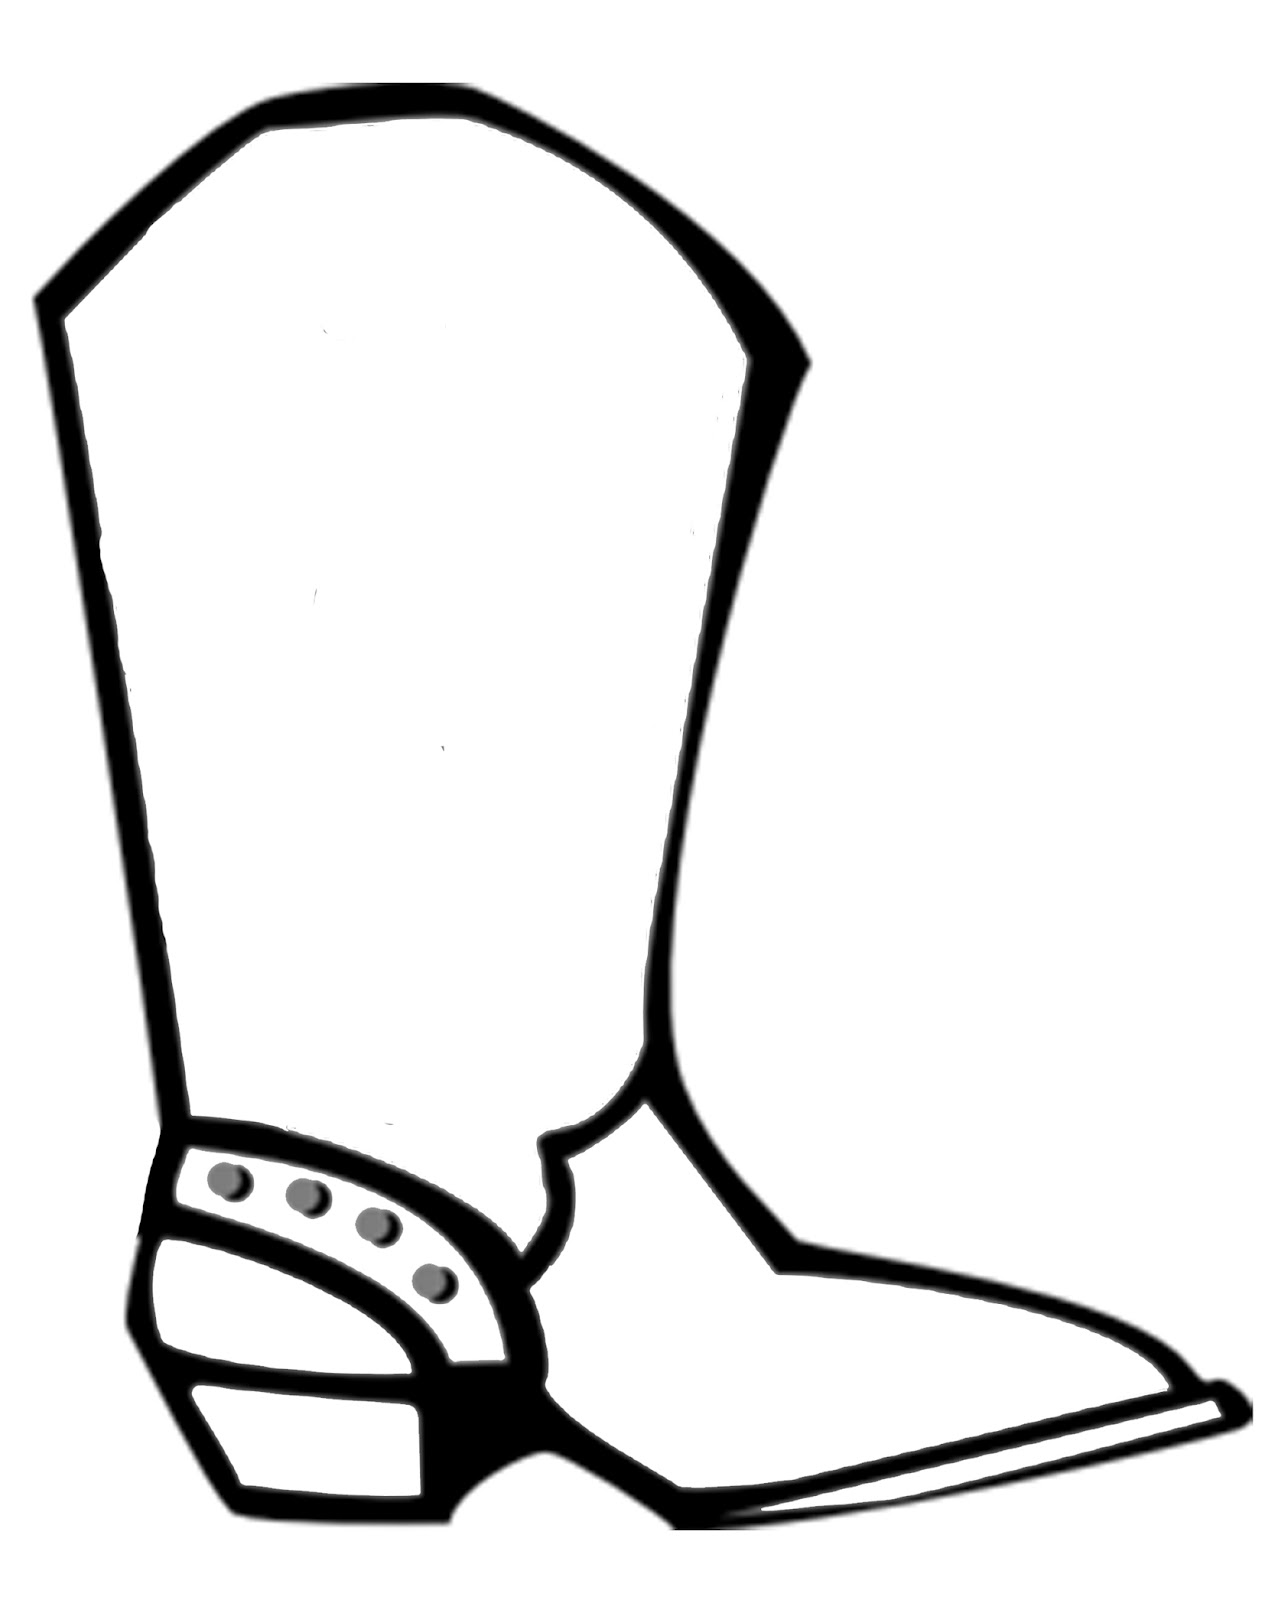 cowboy boots coloring pages cowboy boot coloring pages clipart best coloring pages cowboy boots